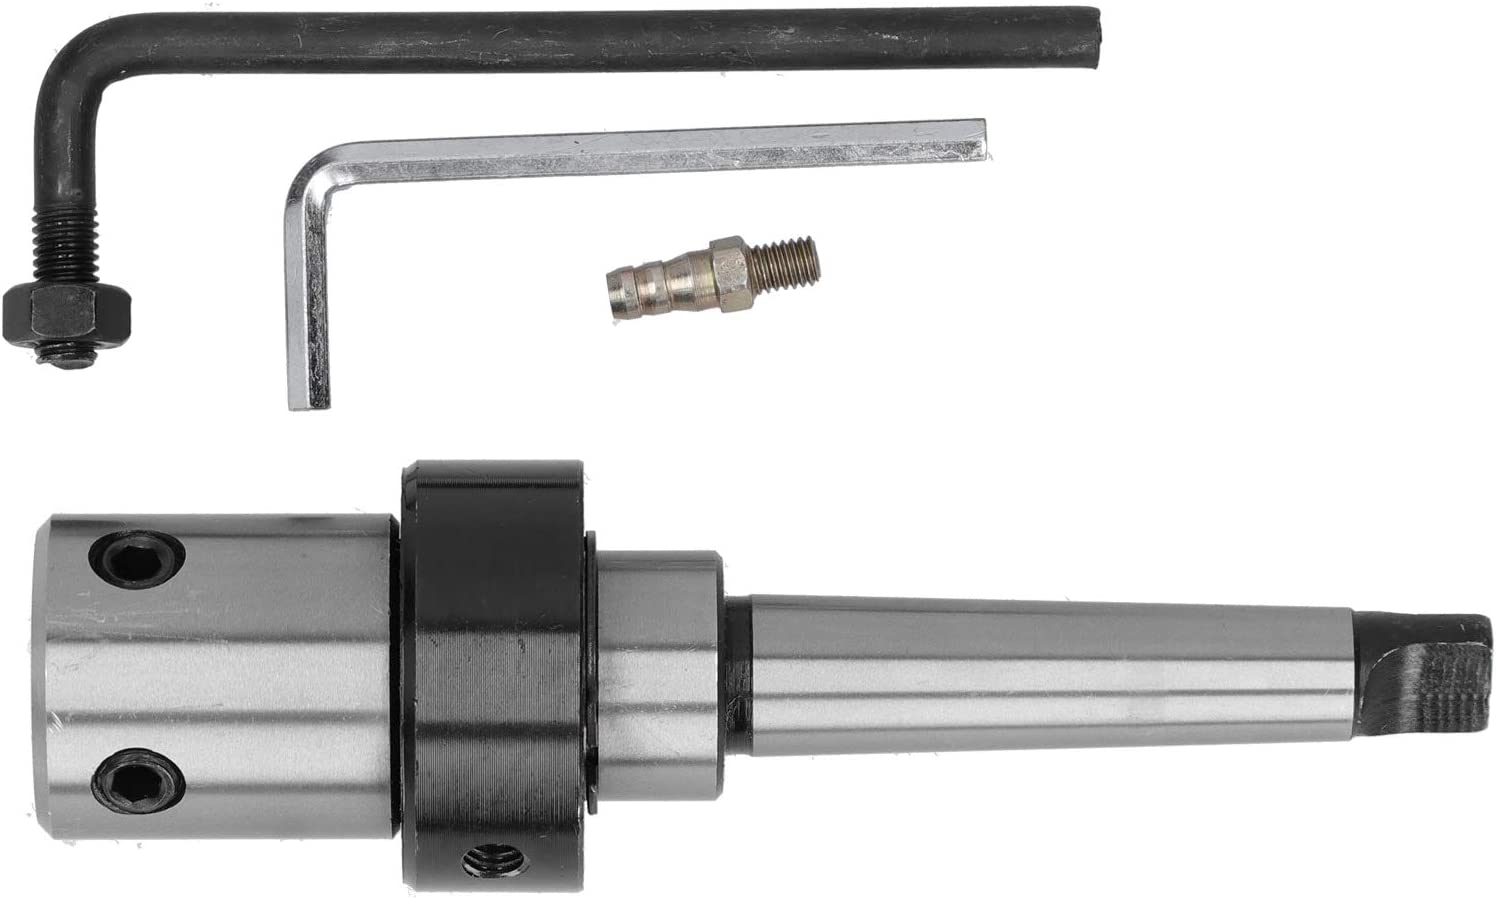 Fdit Morse Drill Sleeve Ranking TOP7 Steel Now on sale S MT2 19.05mm Taper